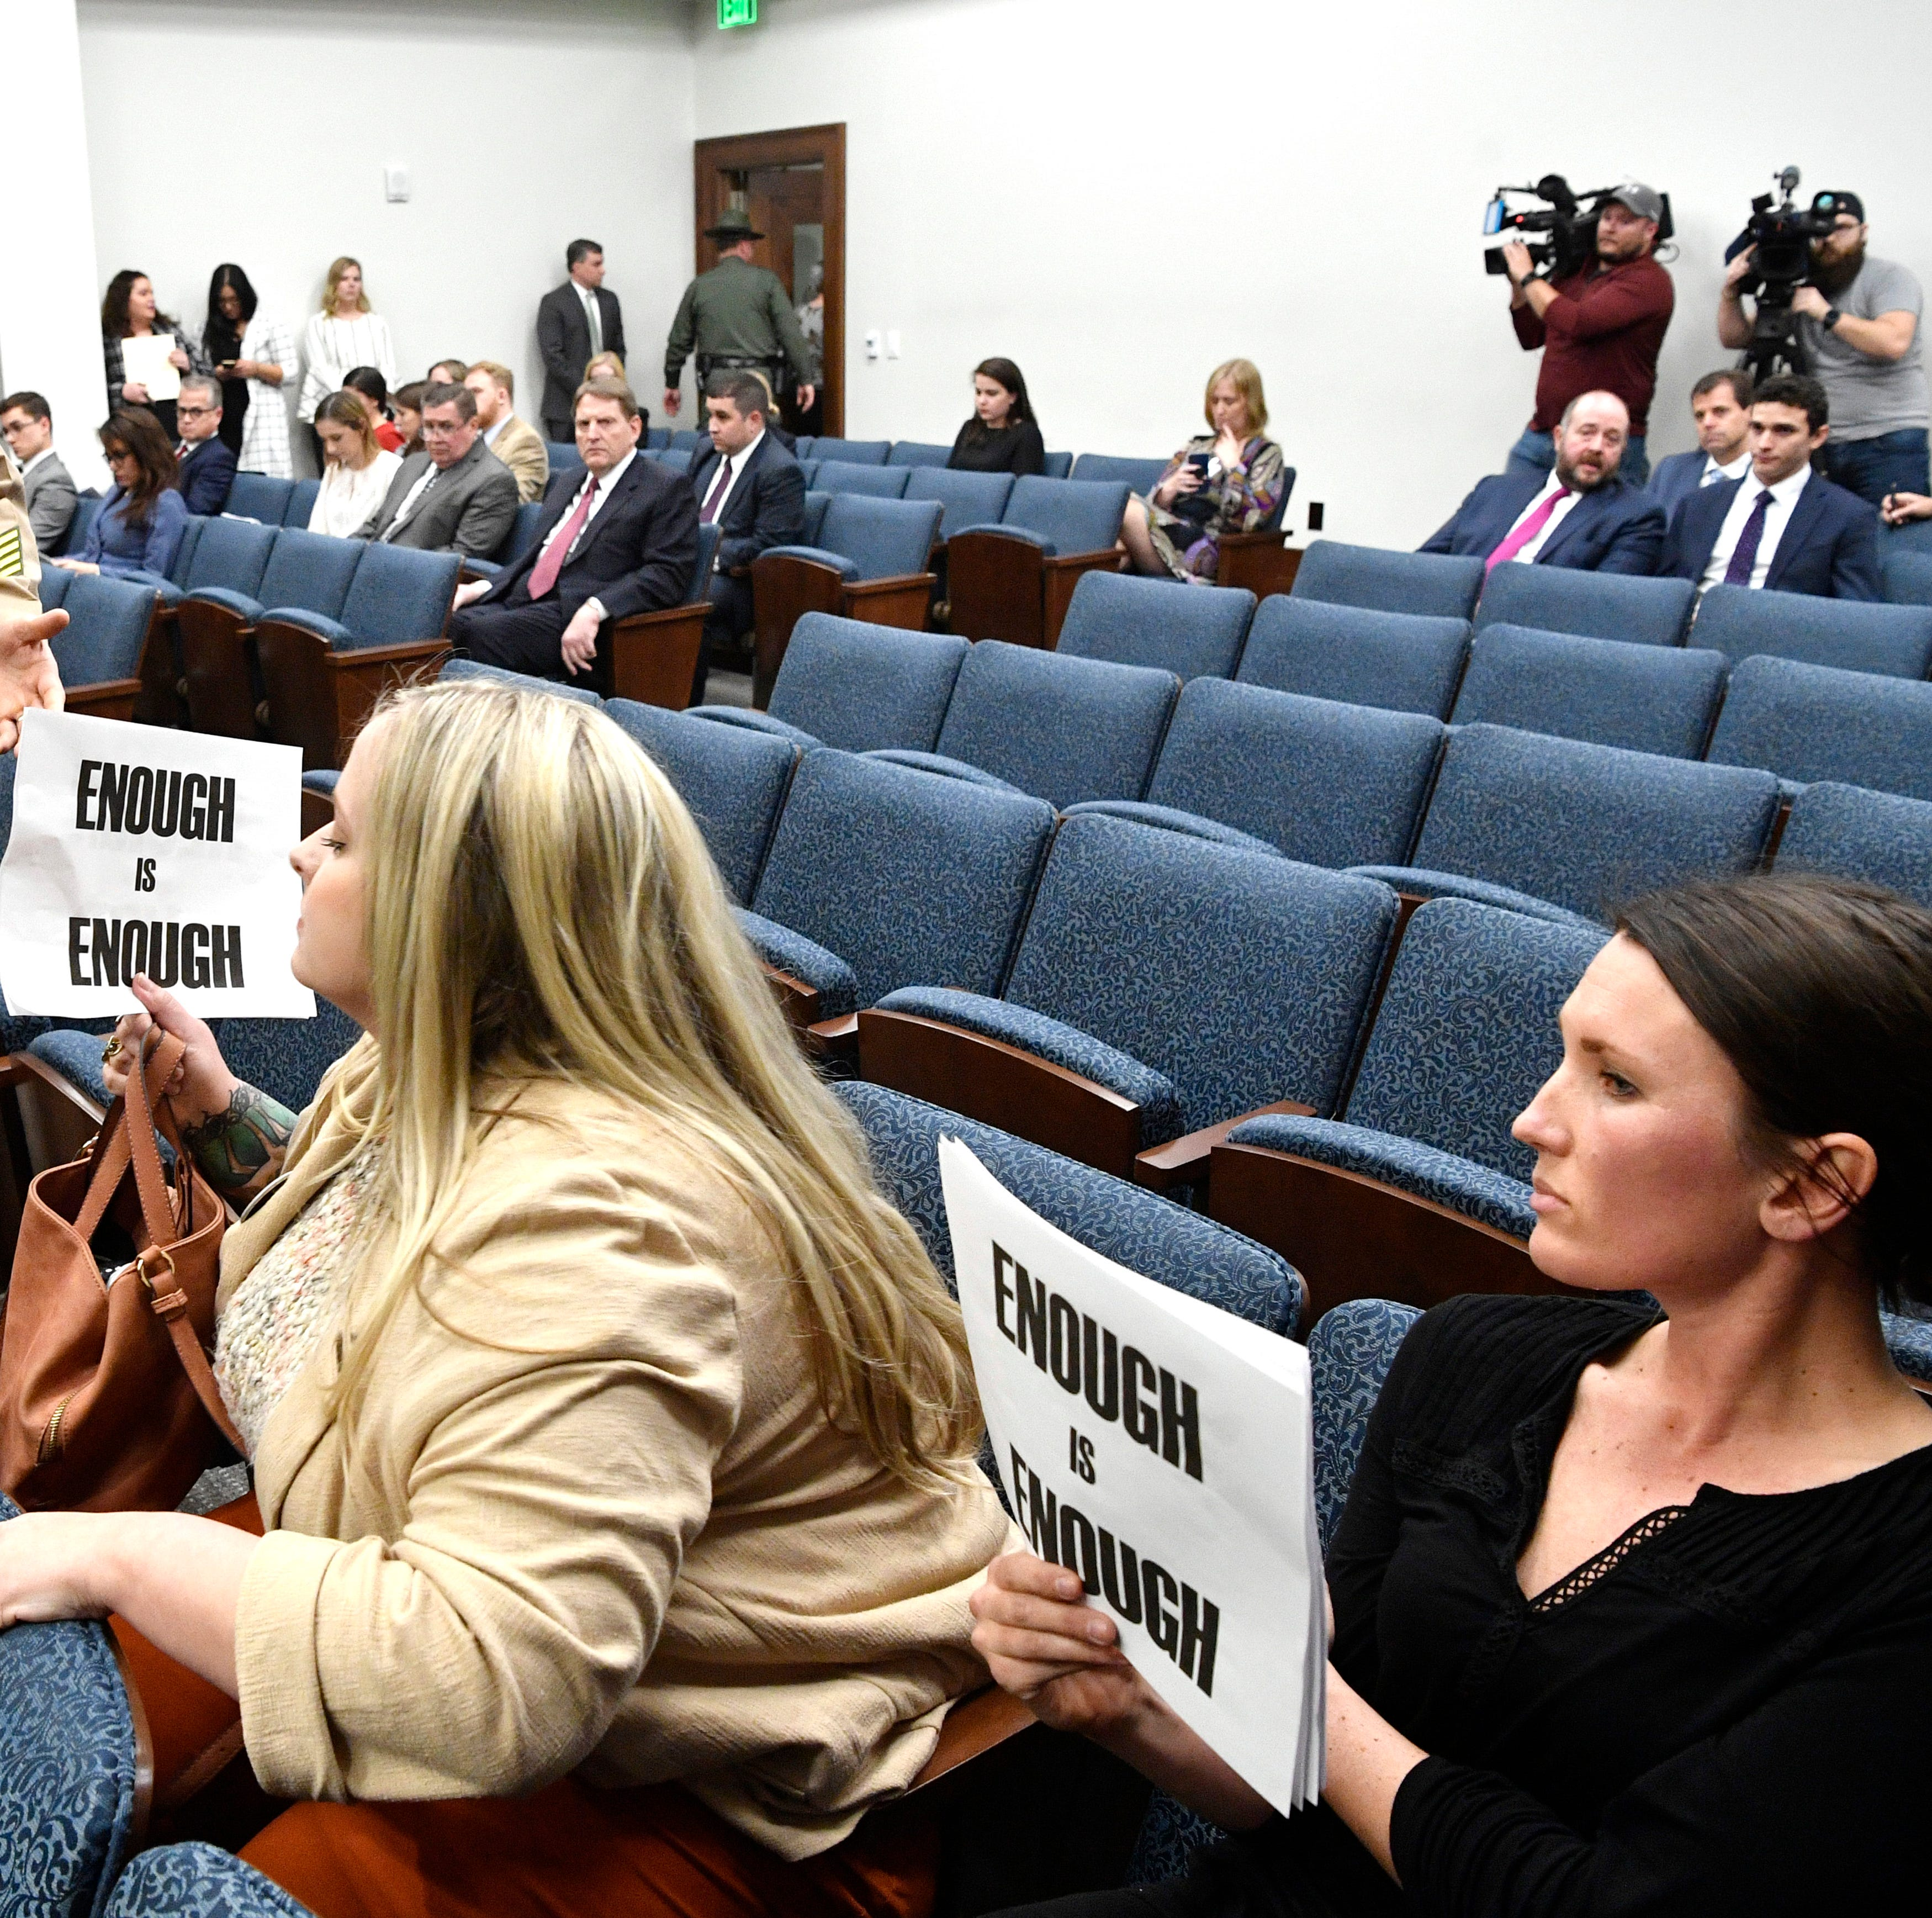 A state Trooper escorts protestors out of the House Education Administration subcommittee for holding signs where Representative David Byrd is the Chairman. They are upset with Byrd over sexual misconduct allegations Tuesday, Feb. 26, 2019, in Nashville, Tenn.